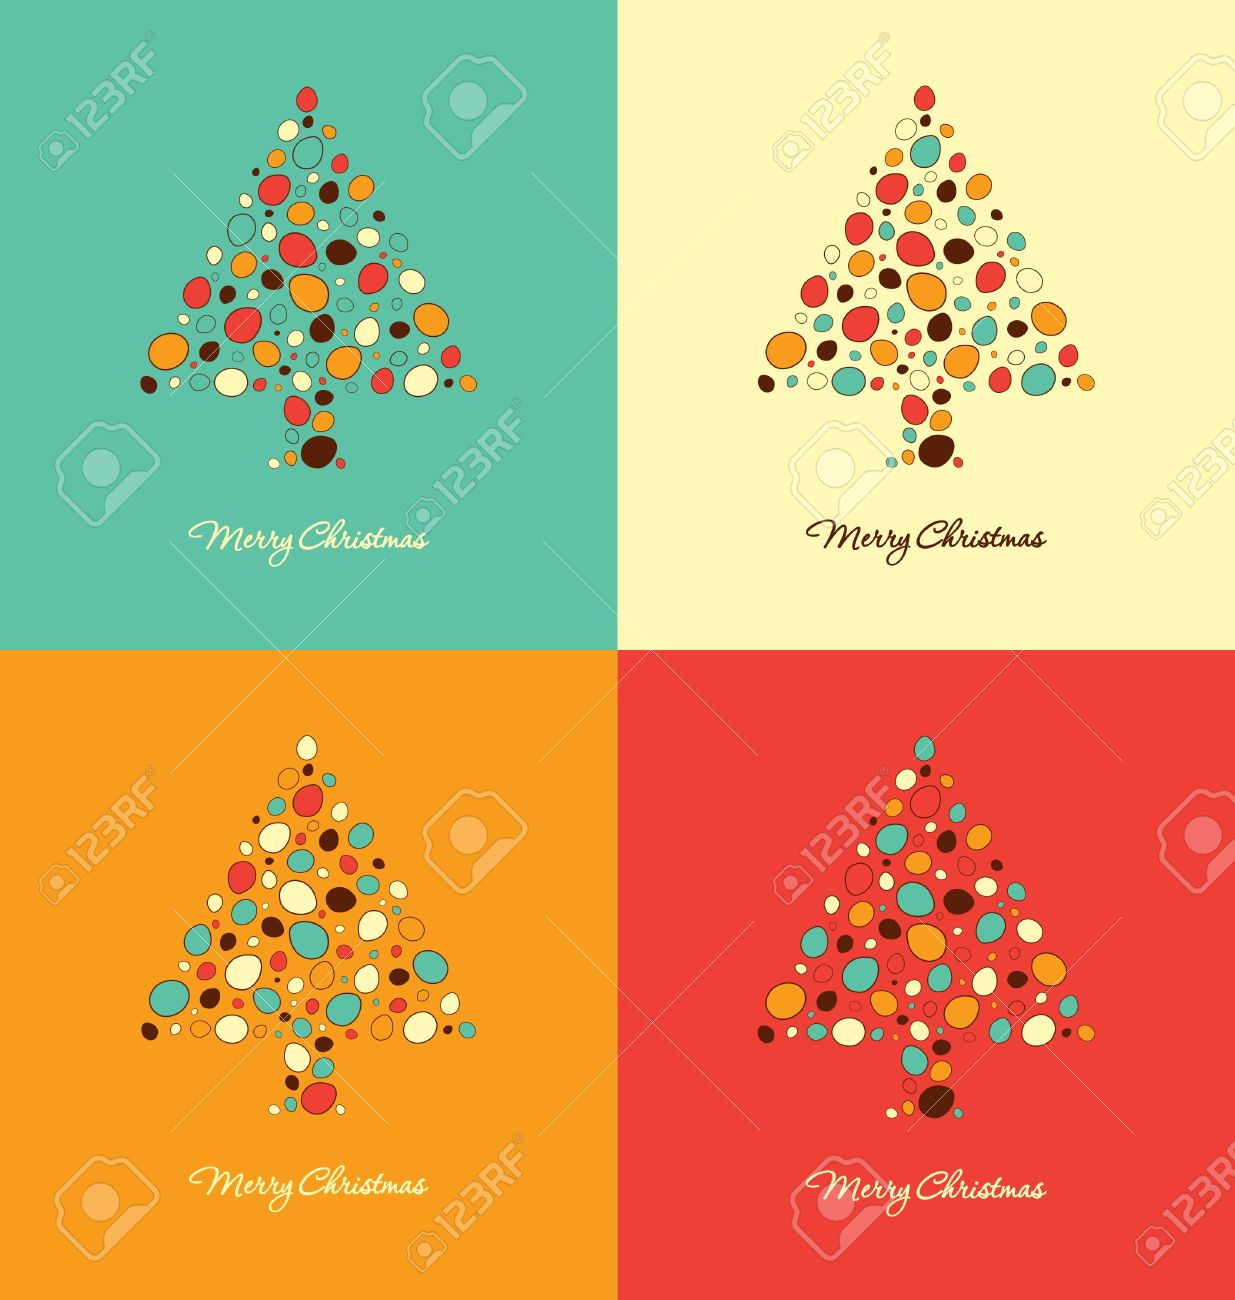 Christmas Card Design Templates Stock Vector   16541408